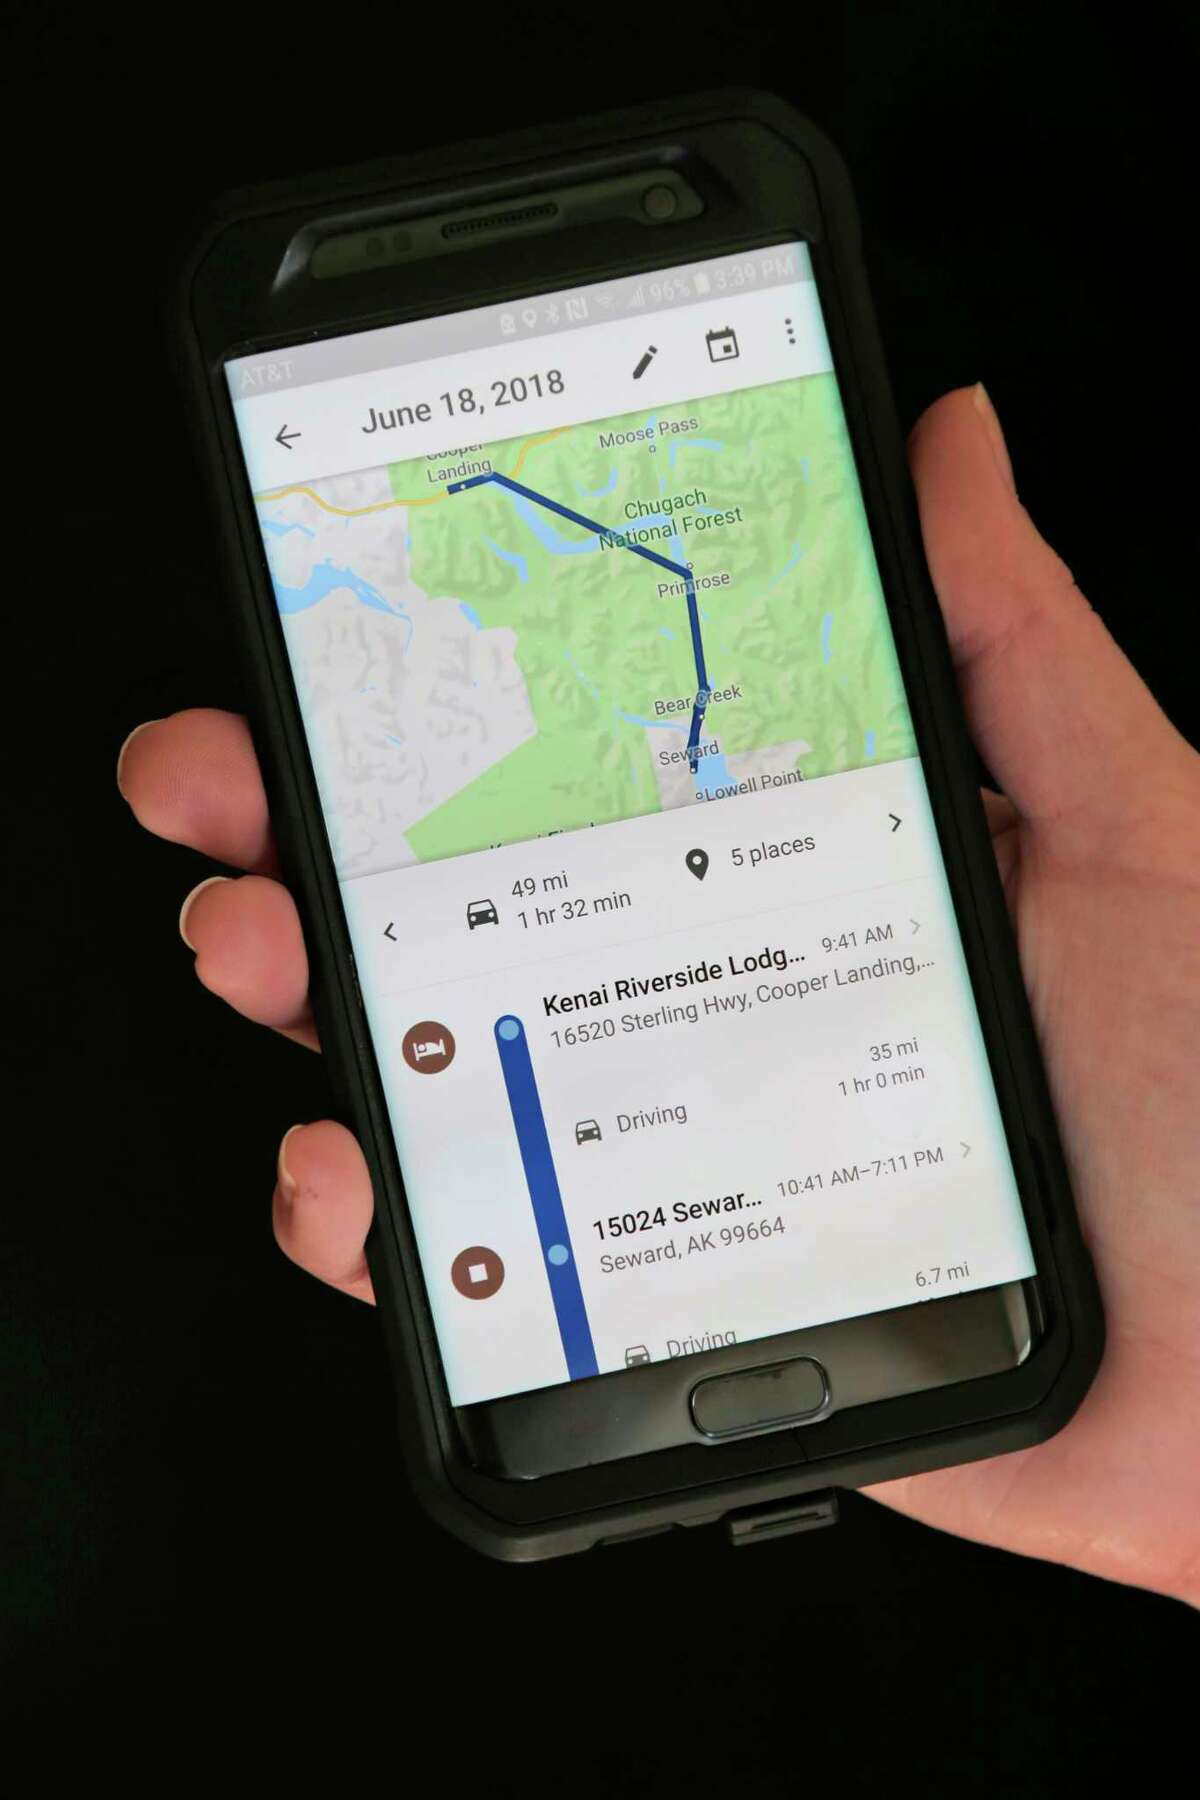 Phone To disable location tracking on an Android device, head to the